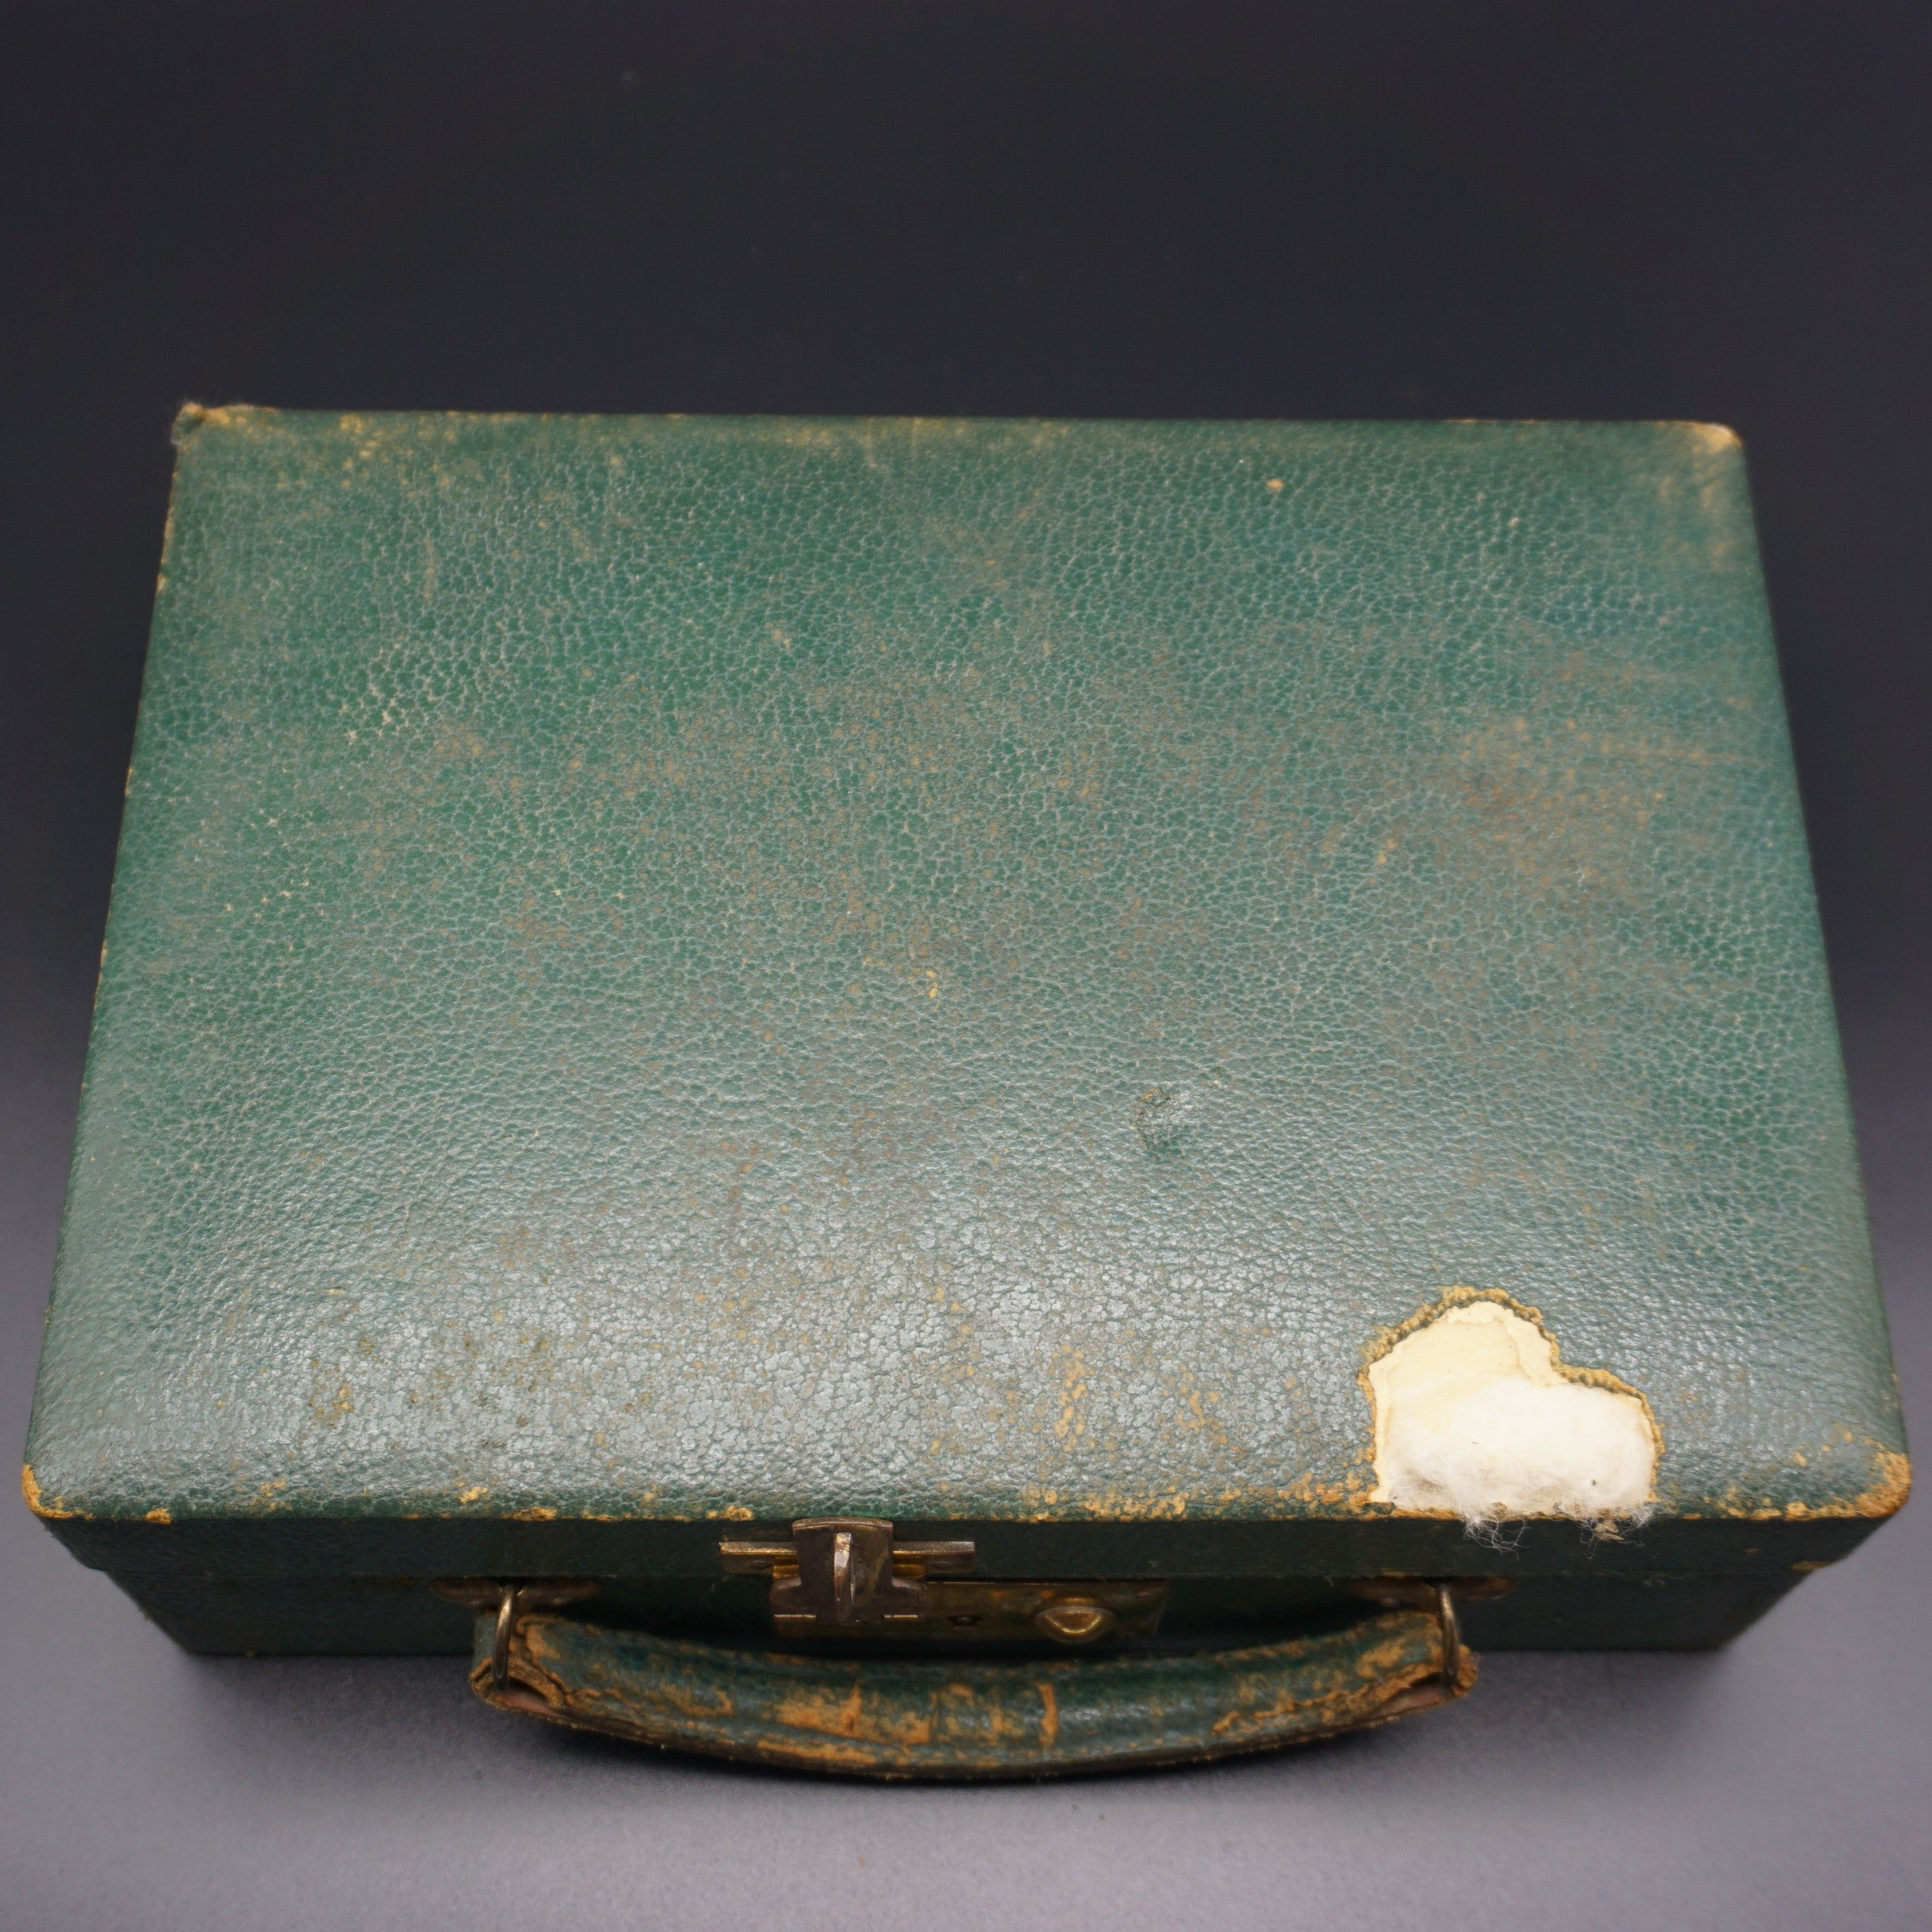 Vintage Green Leather Jewelry Box with Velvet Lining and Removable